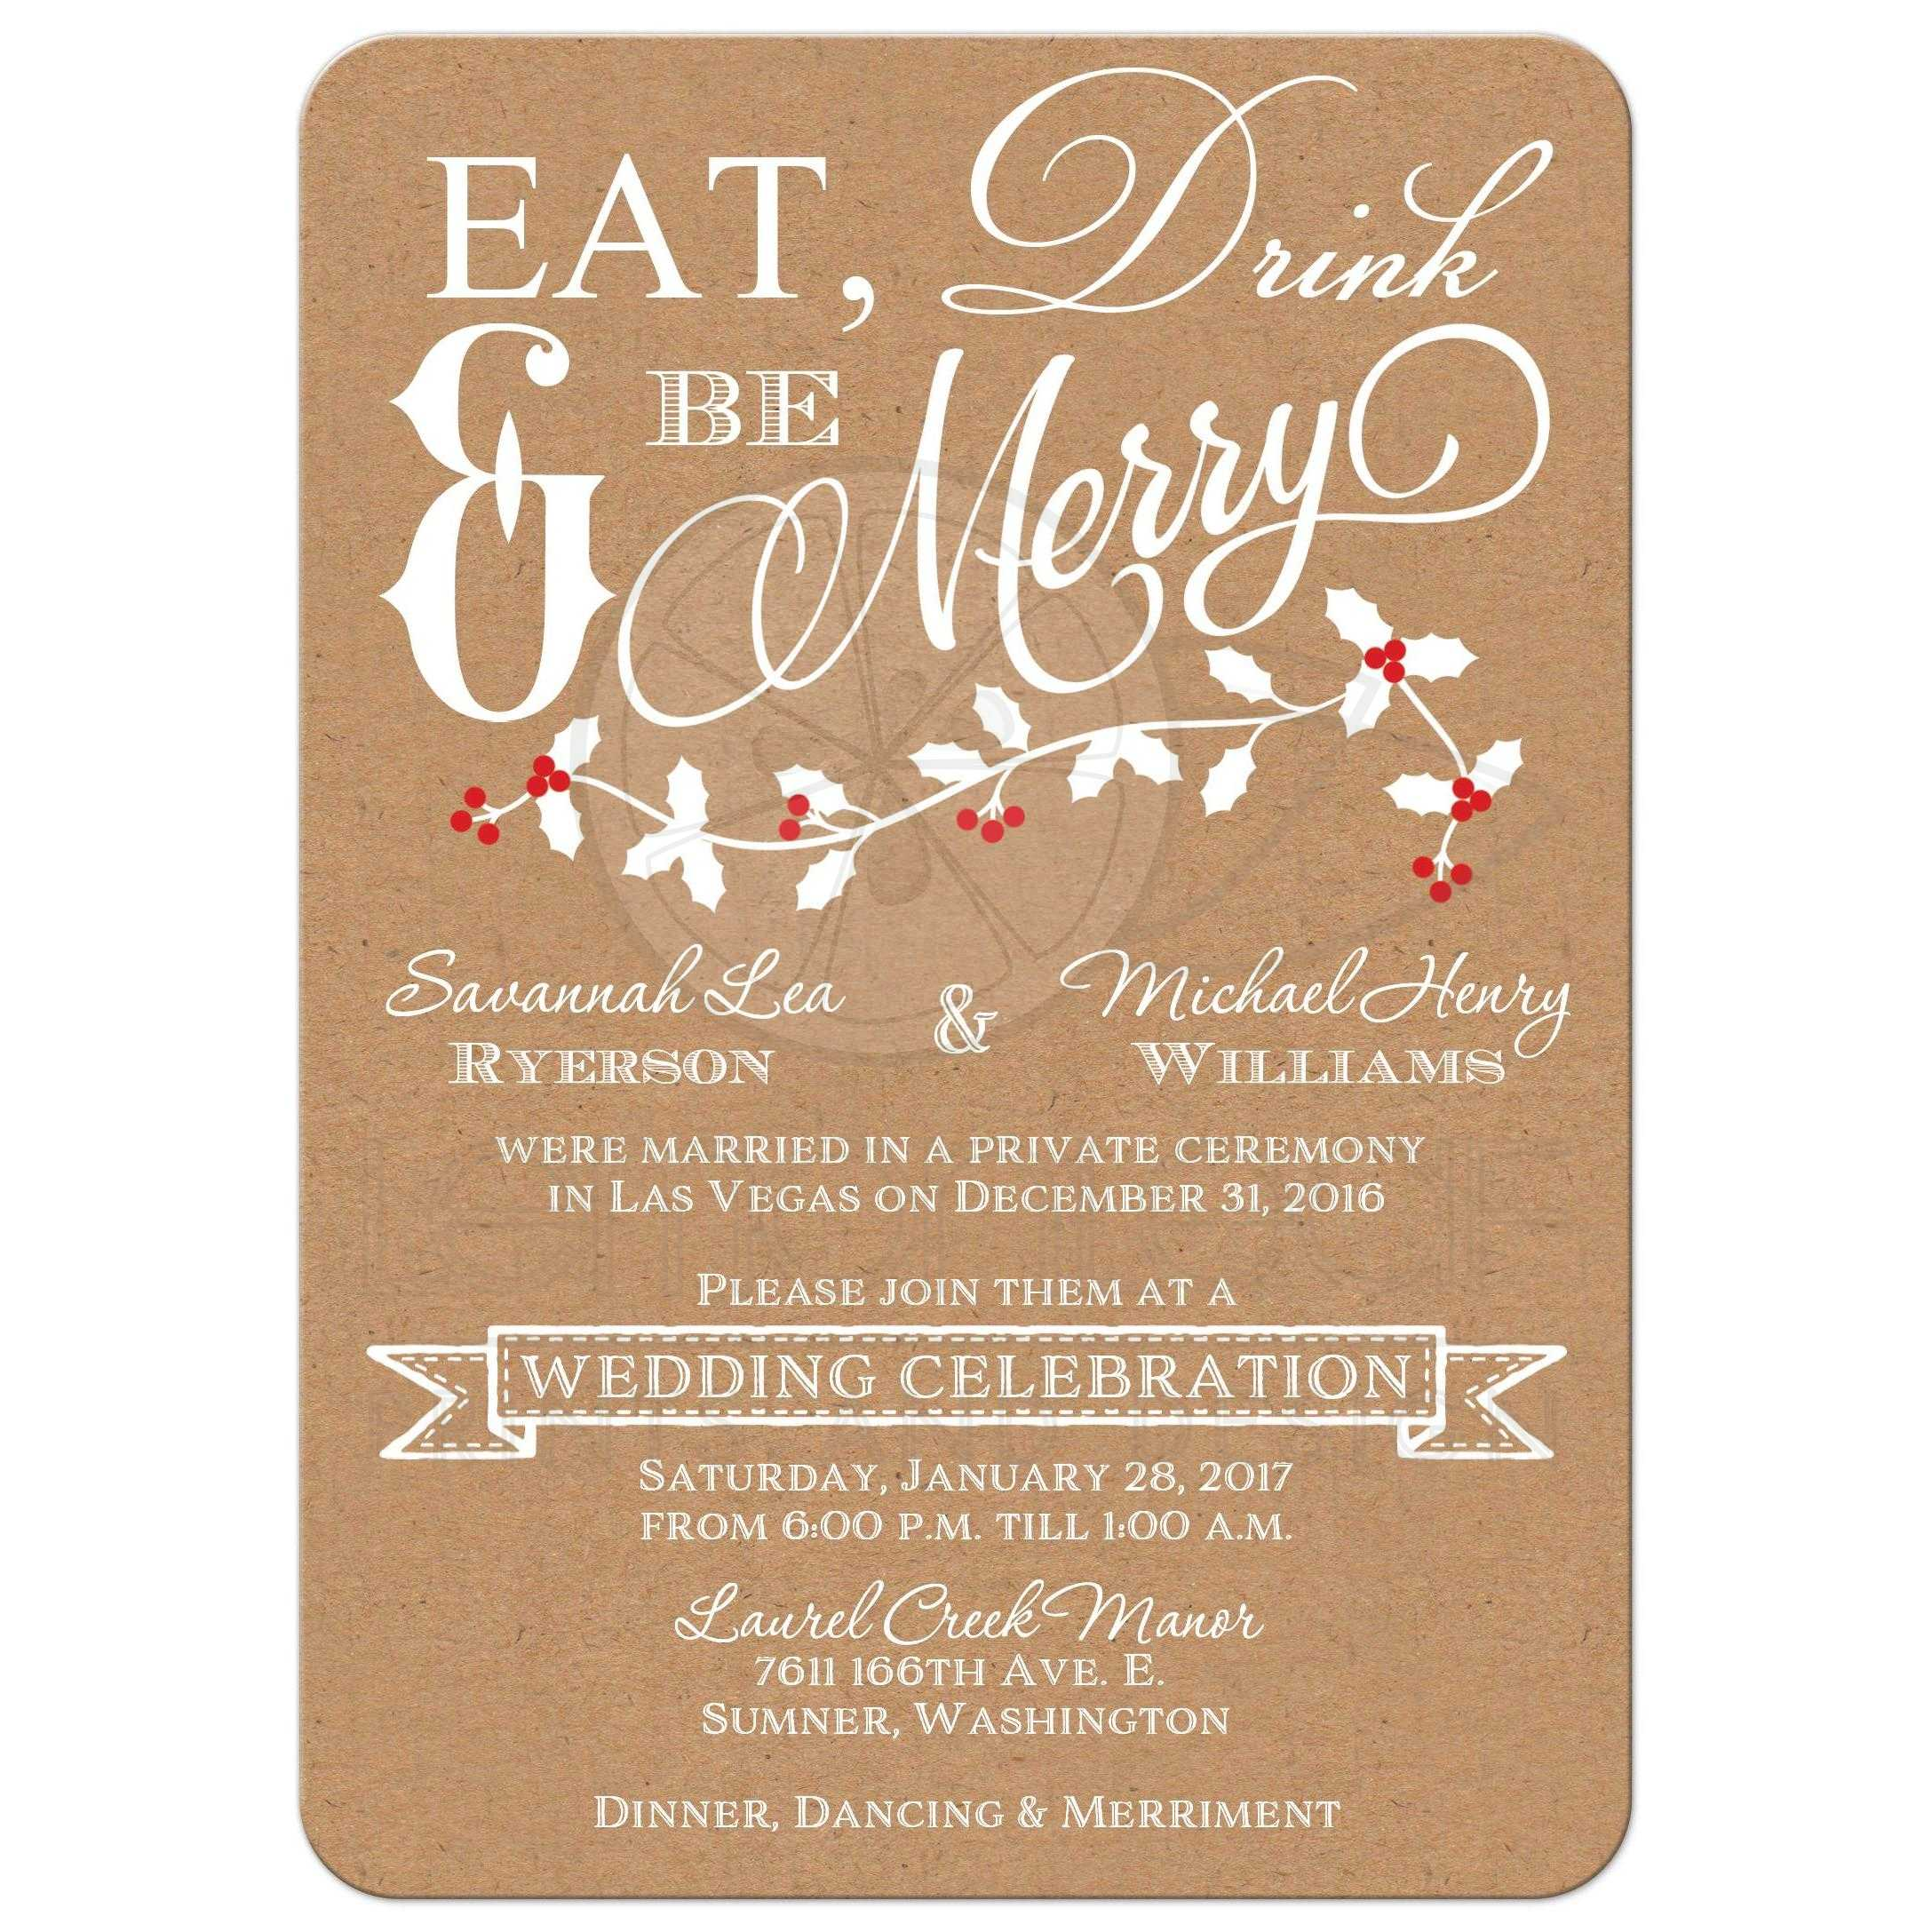 Wedding Dance Only Invitation Wording: Winter Wedding Reception Invitation